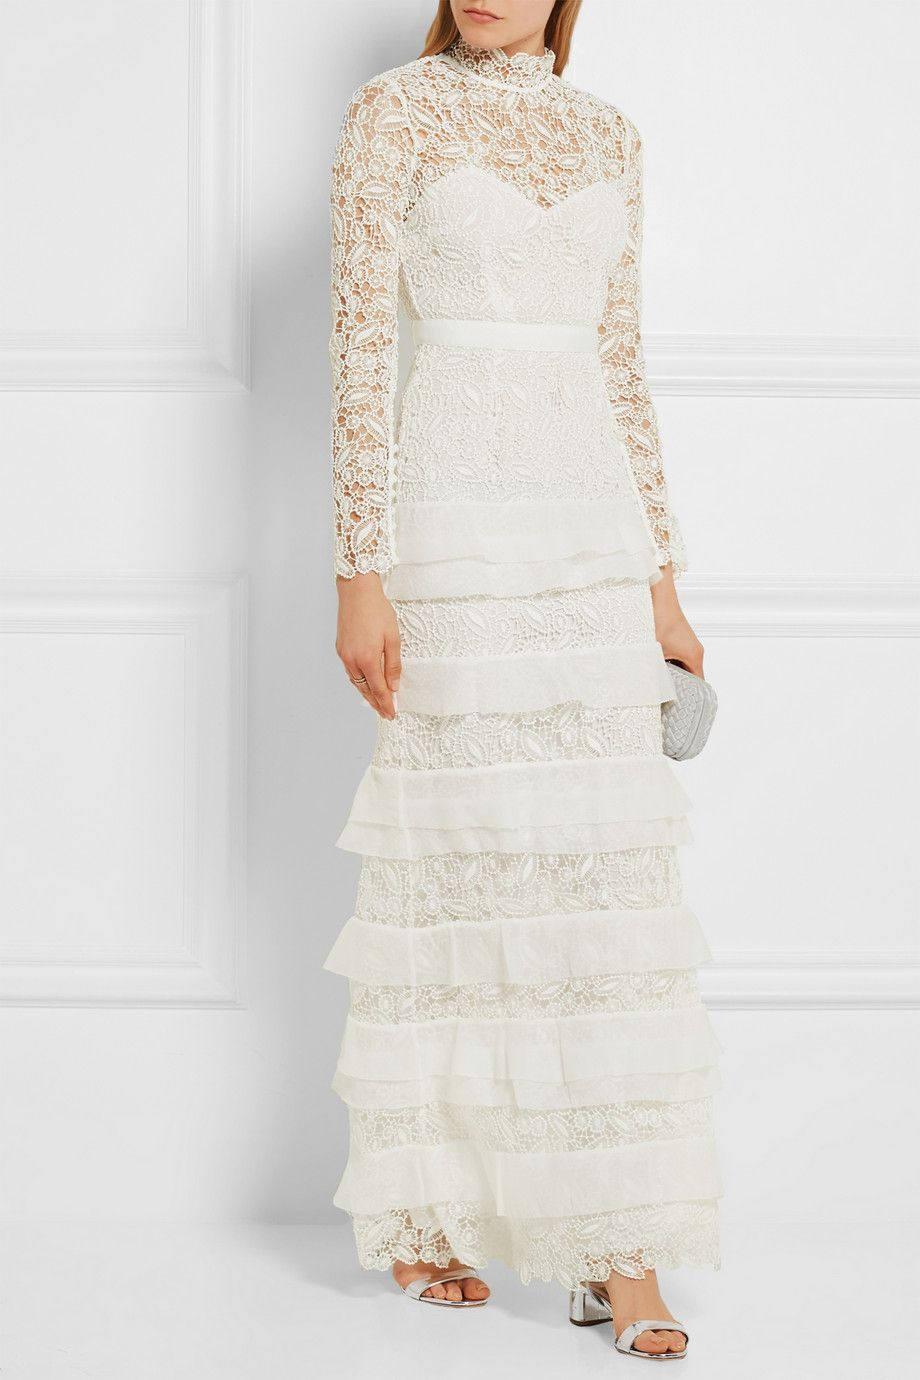 This fashiongirl favorite now makes amazing wedding dresses